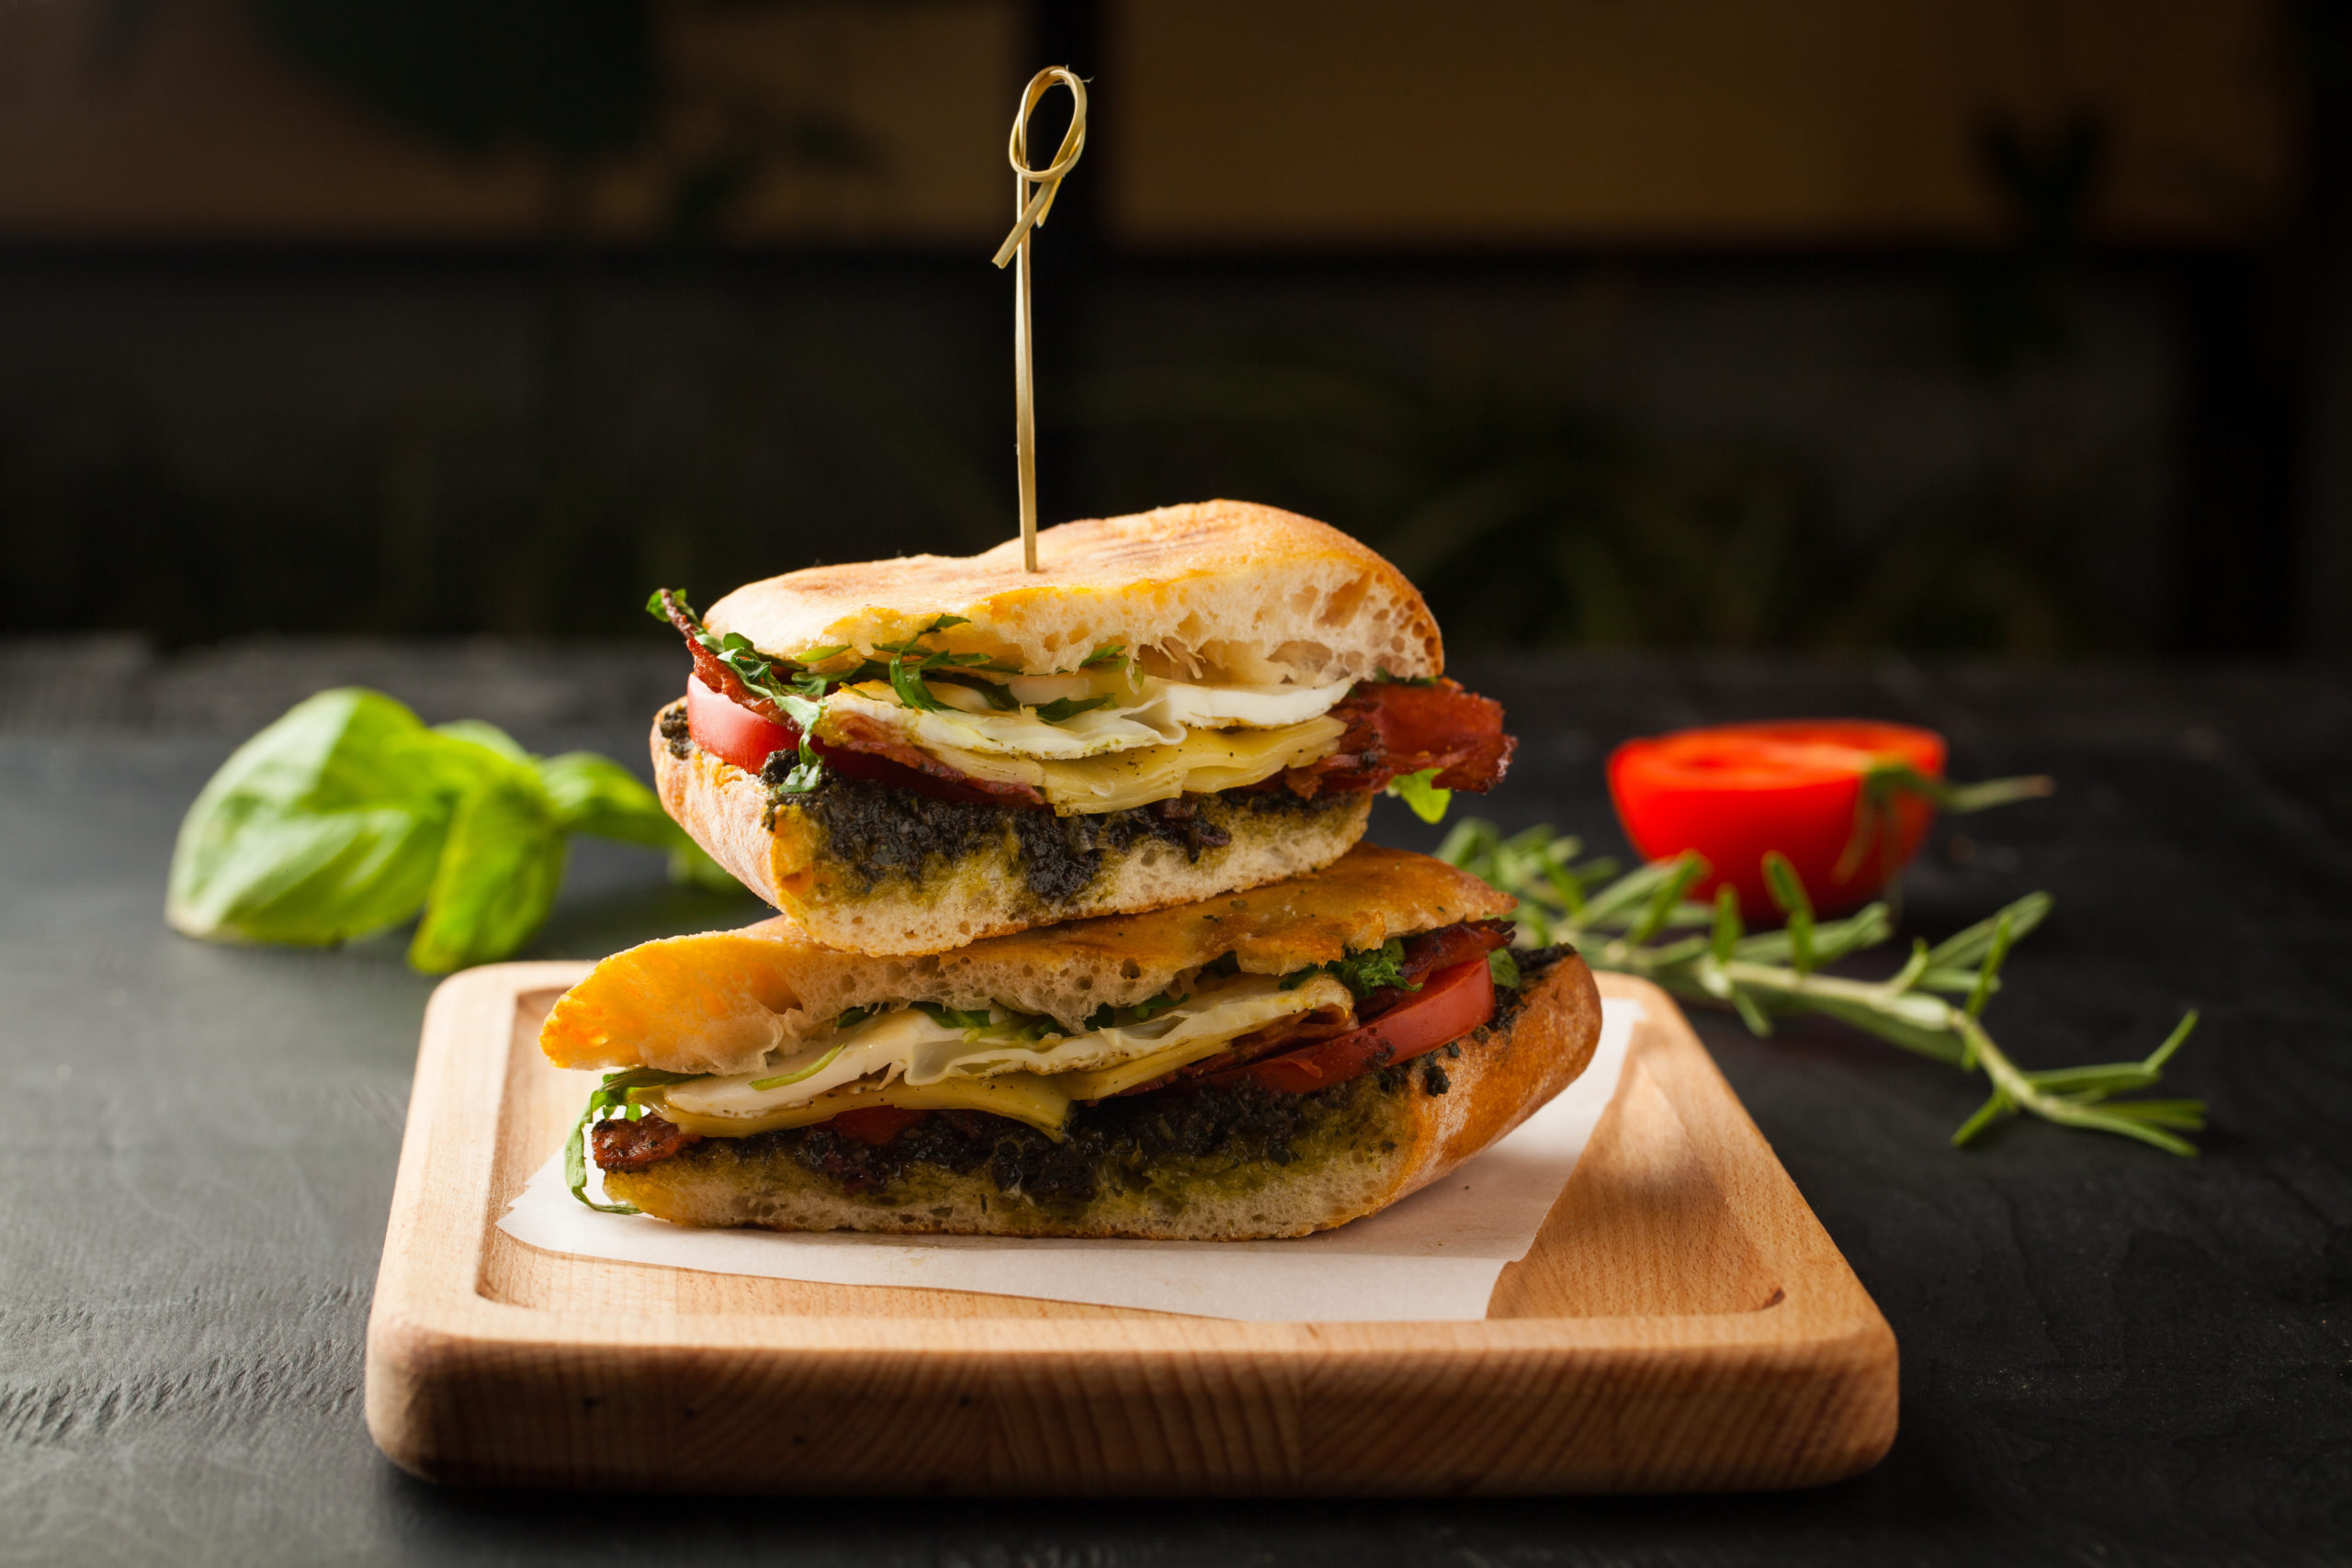 Cheese Pesto Sandwich